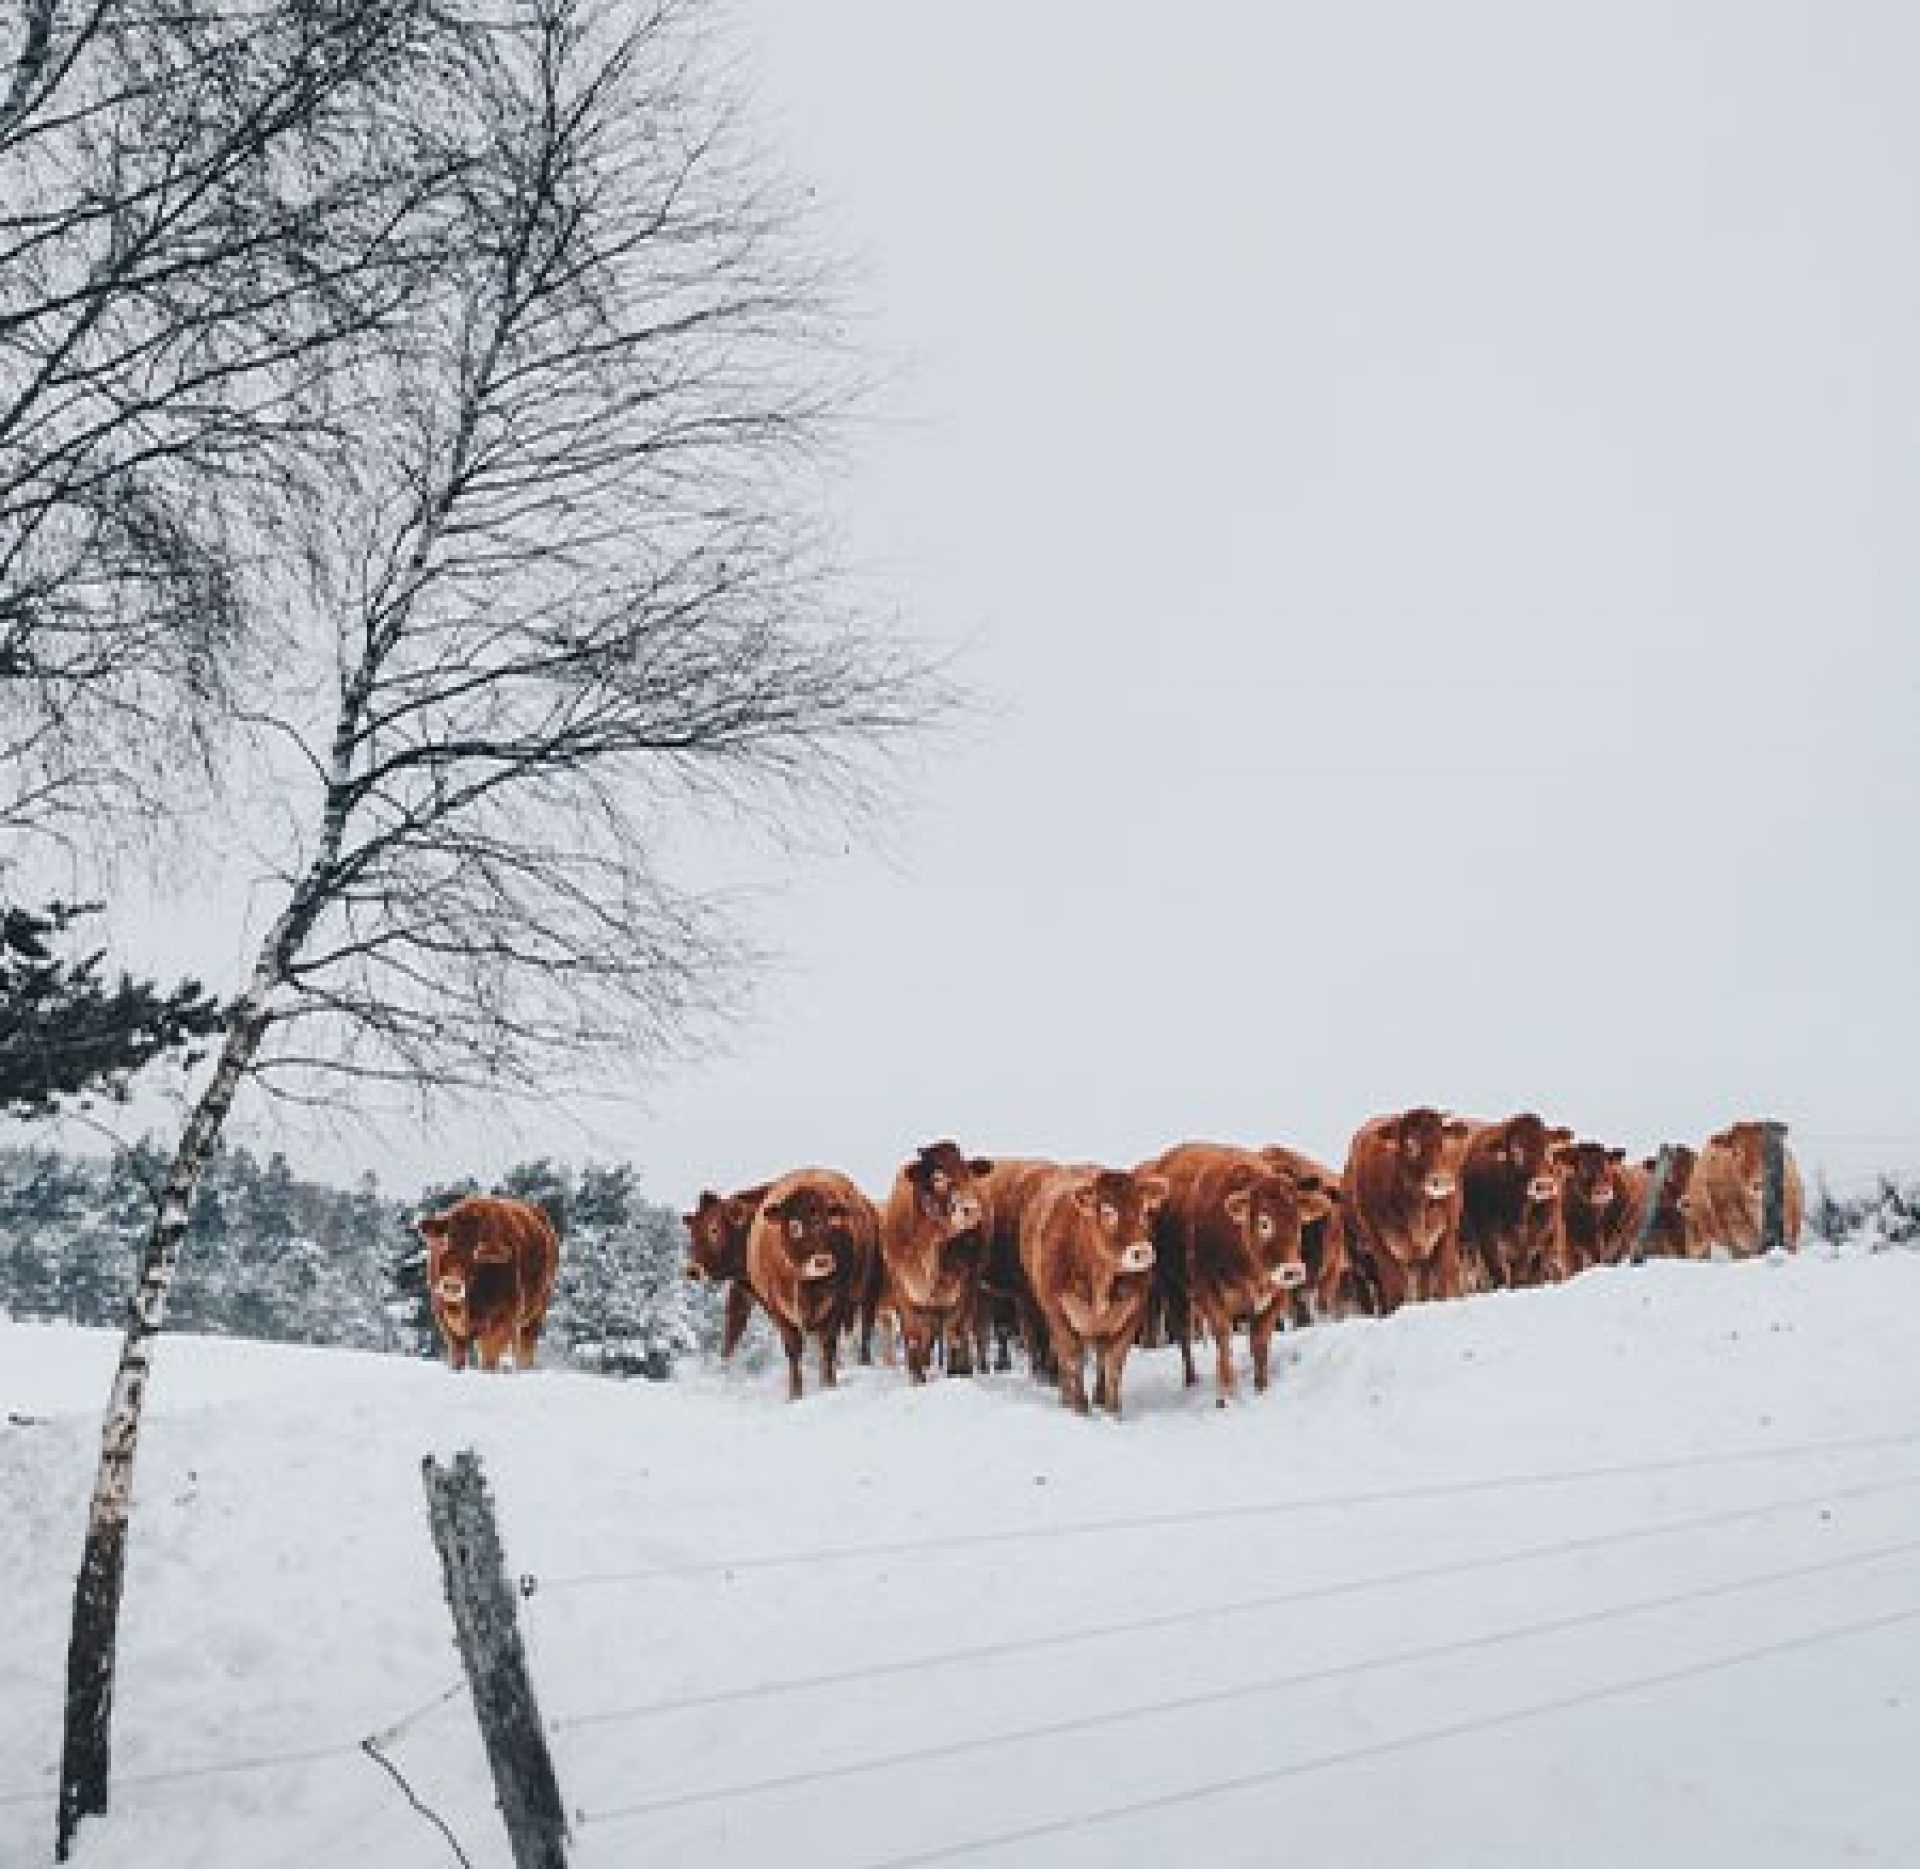 Herd of red cows grazing in snow pasture